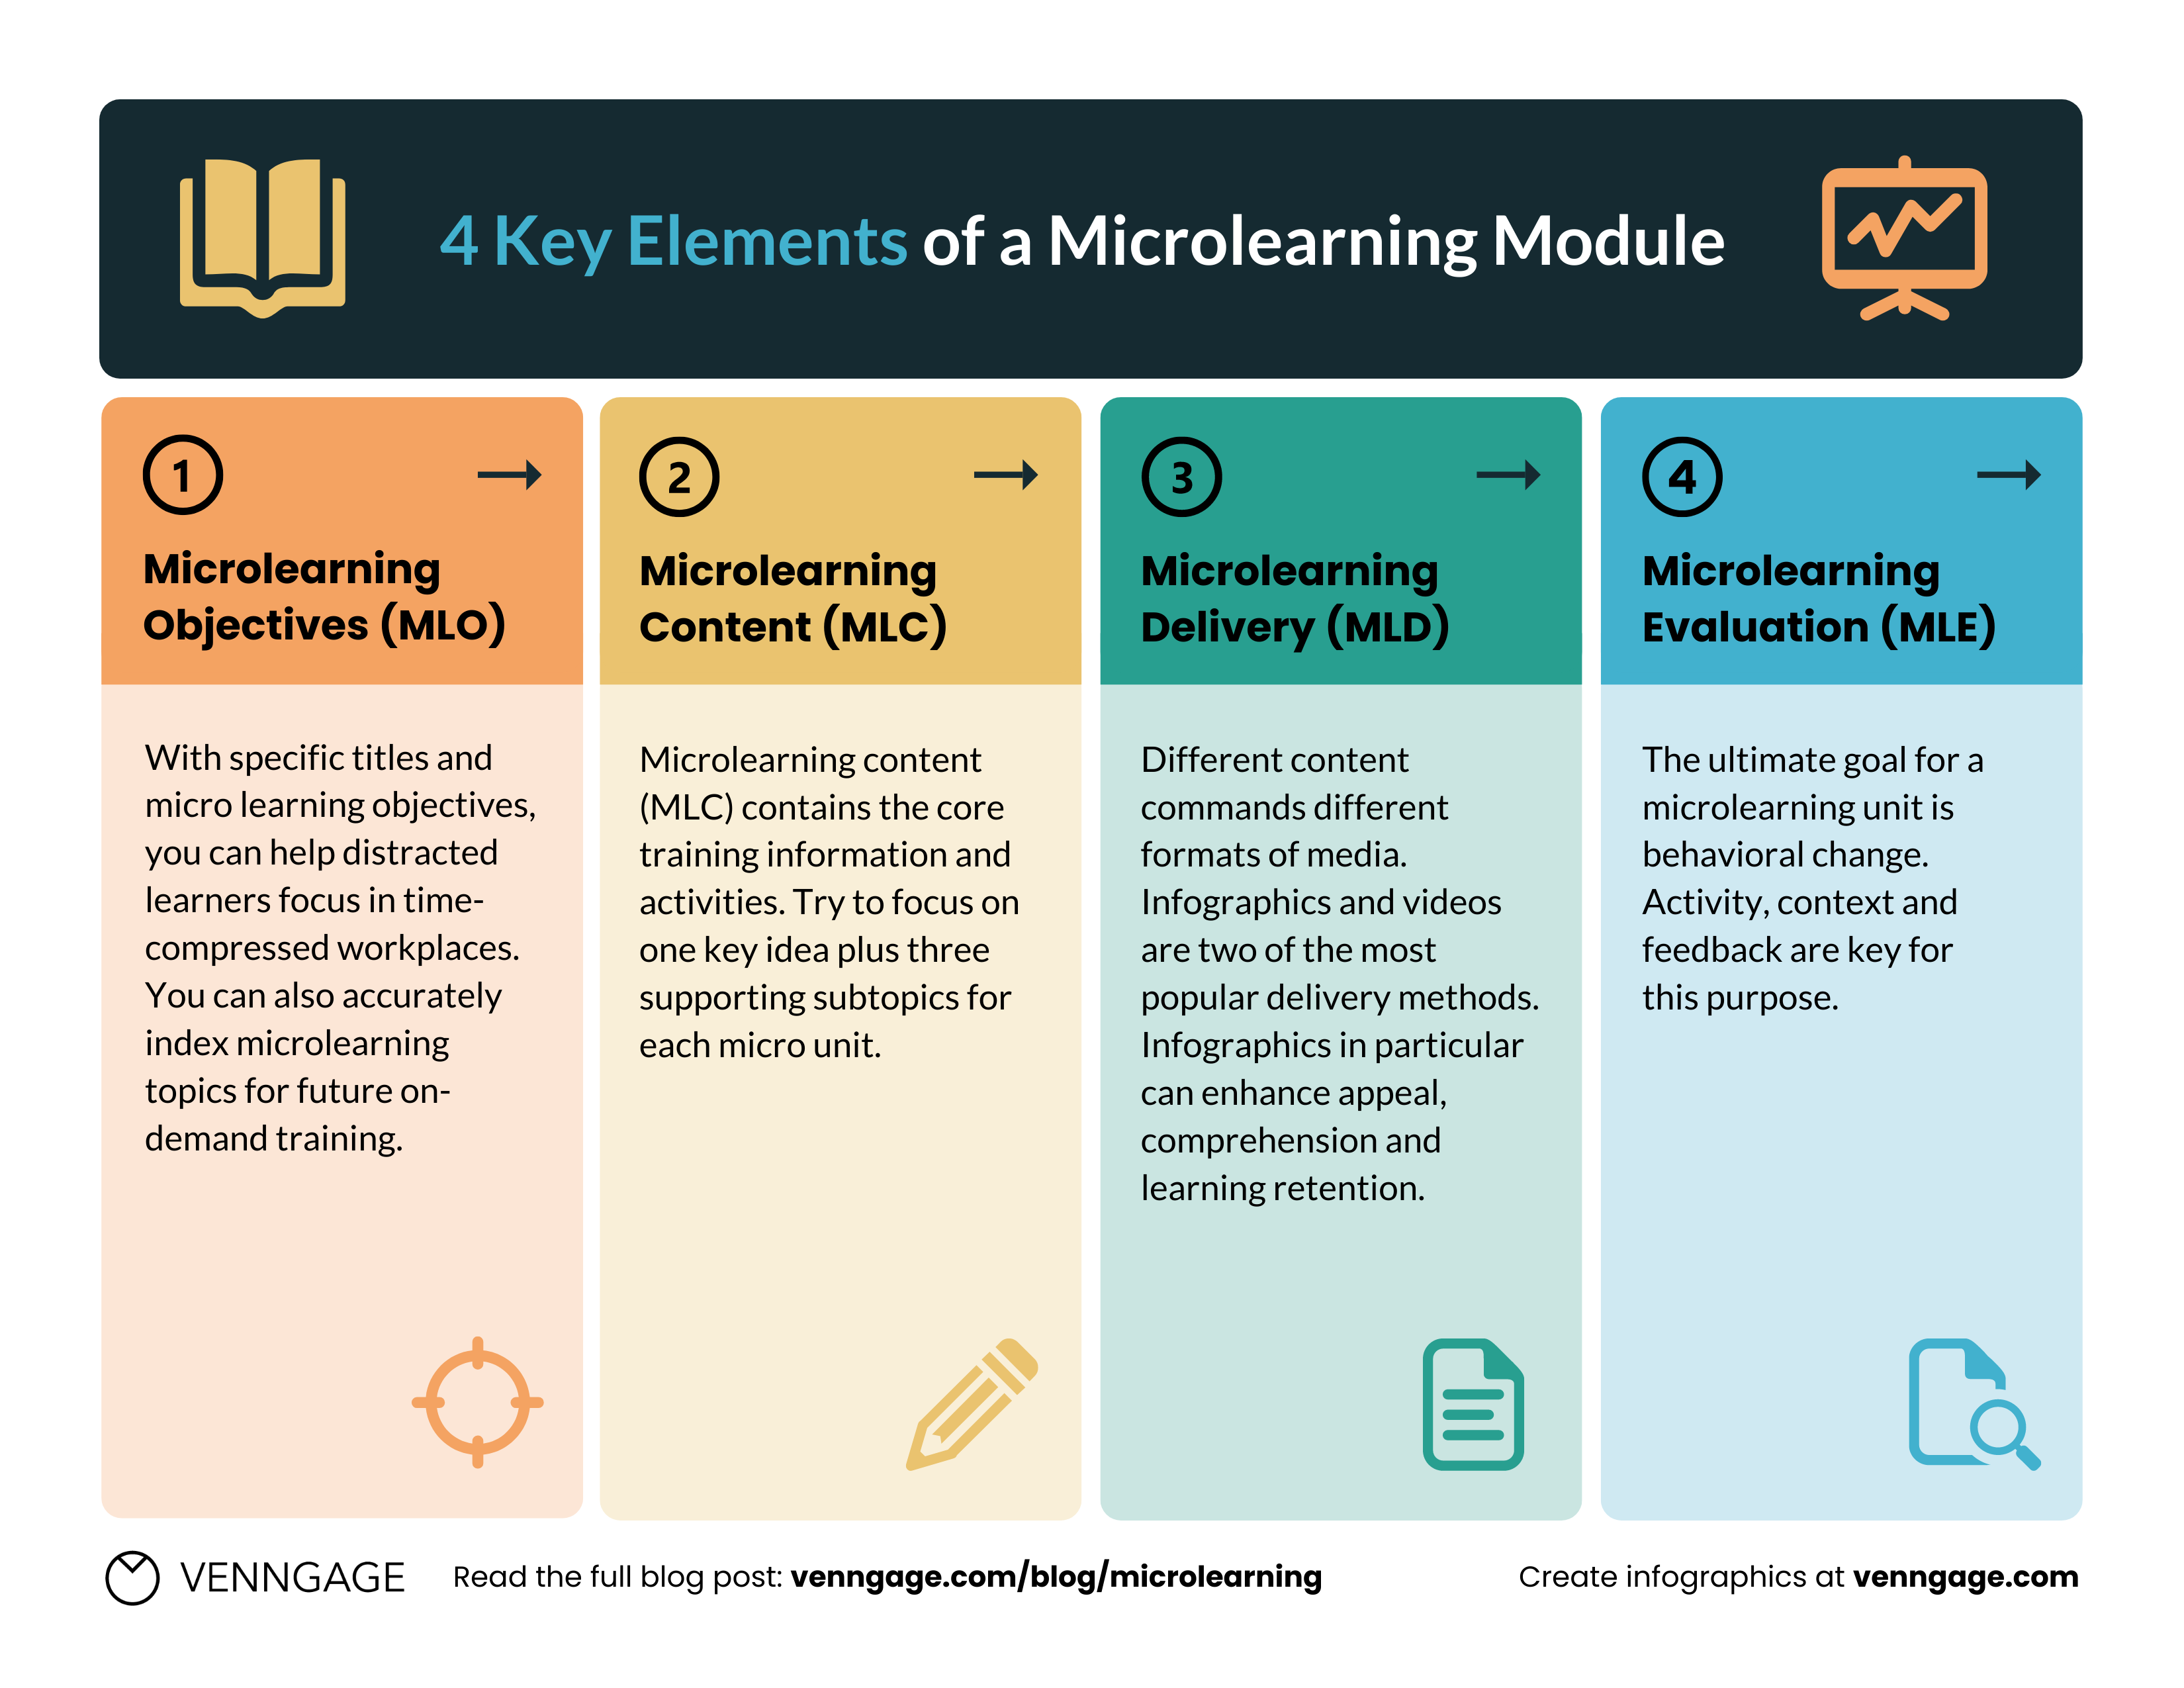 Key elements of a microlearning module